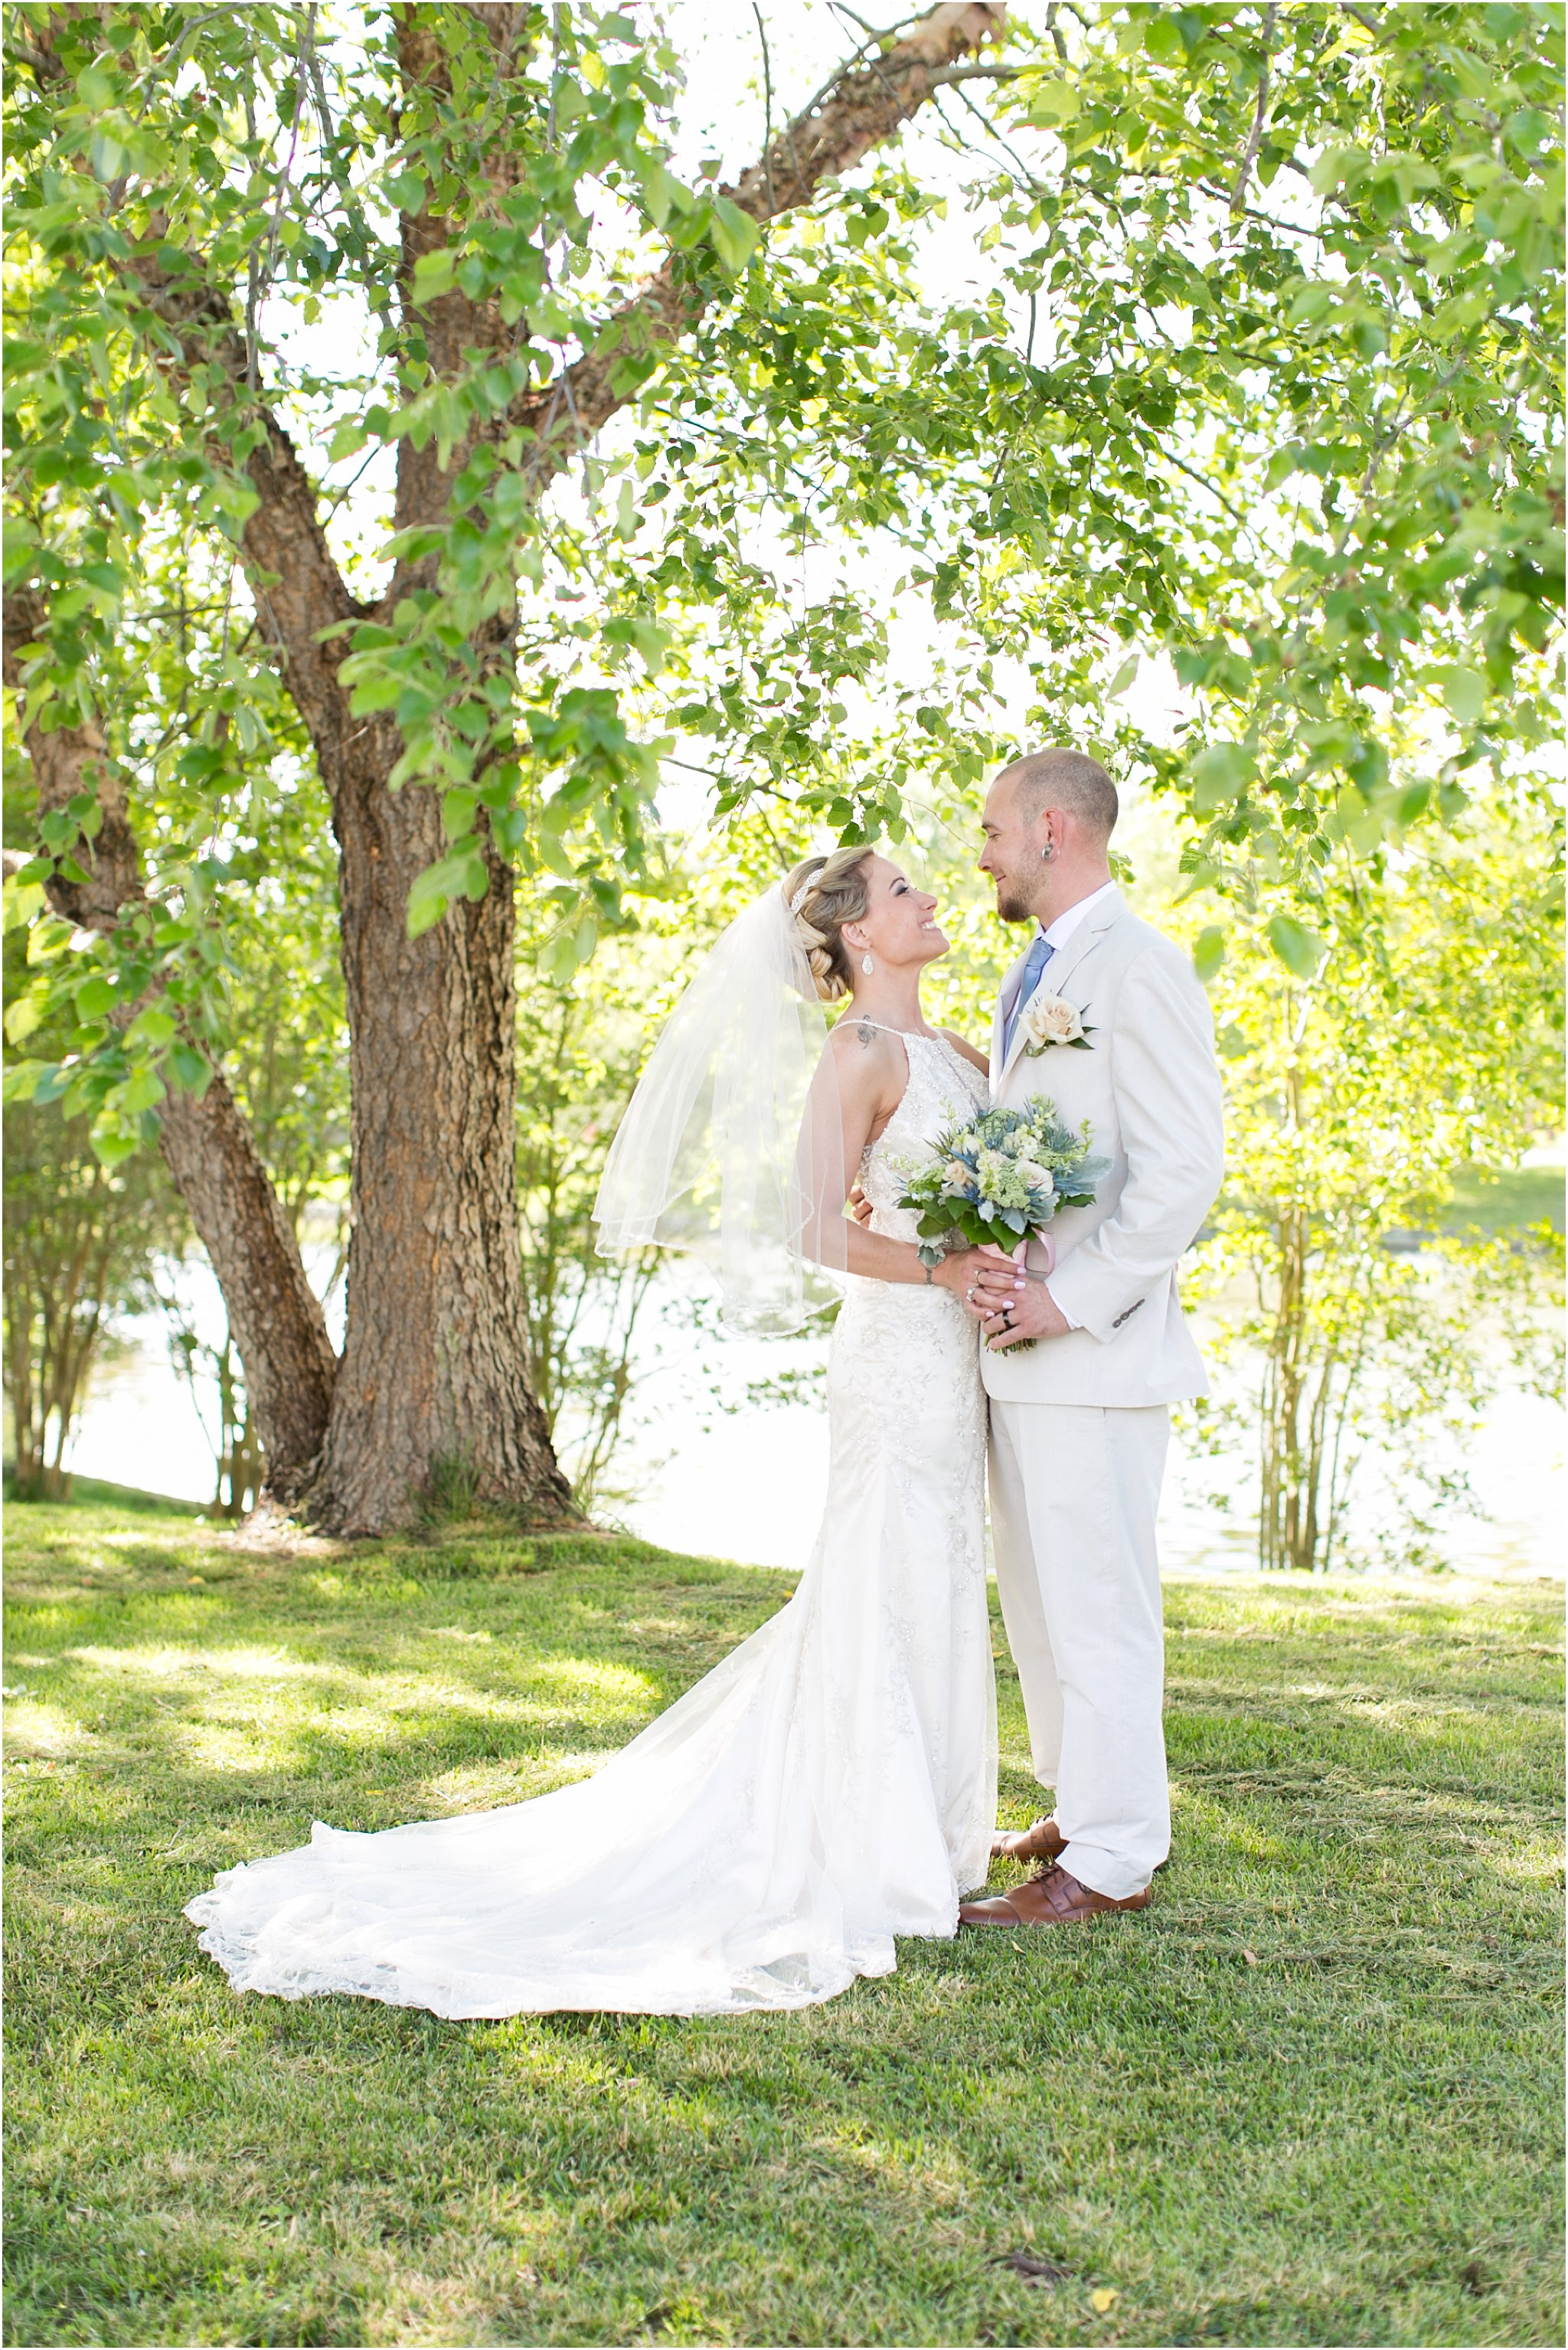 jessica_ryan_photography_virginia_virginiabeachweddingphotographer_studioIdo_backyardwedding_waterfrontwedding_1668